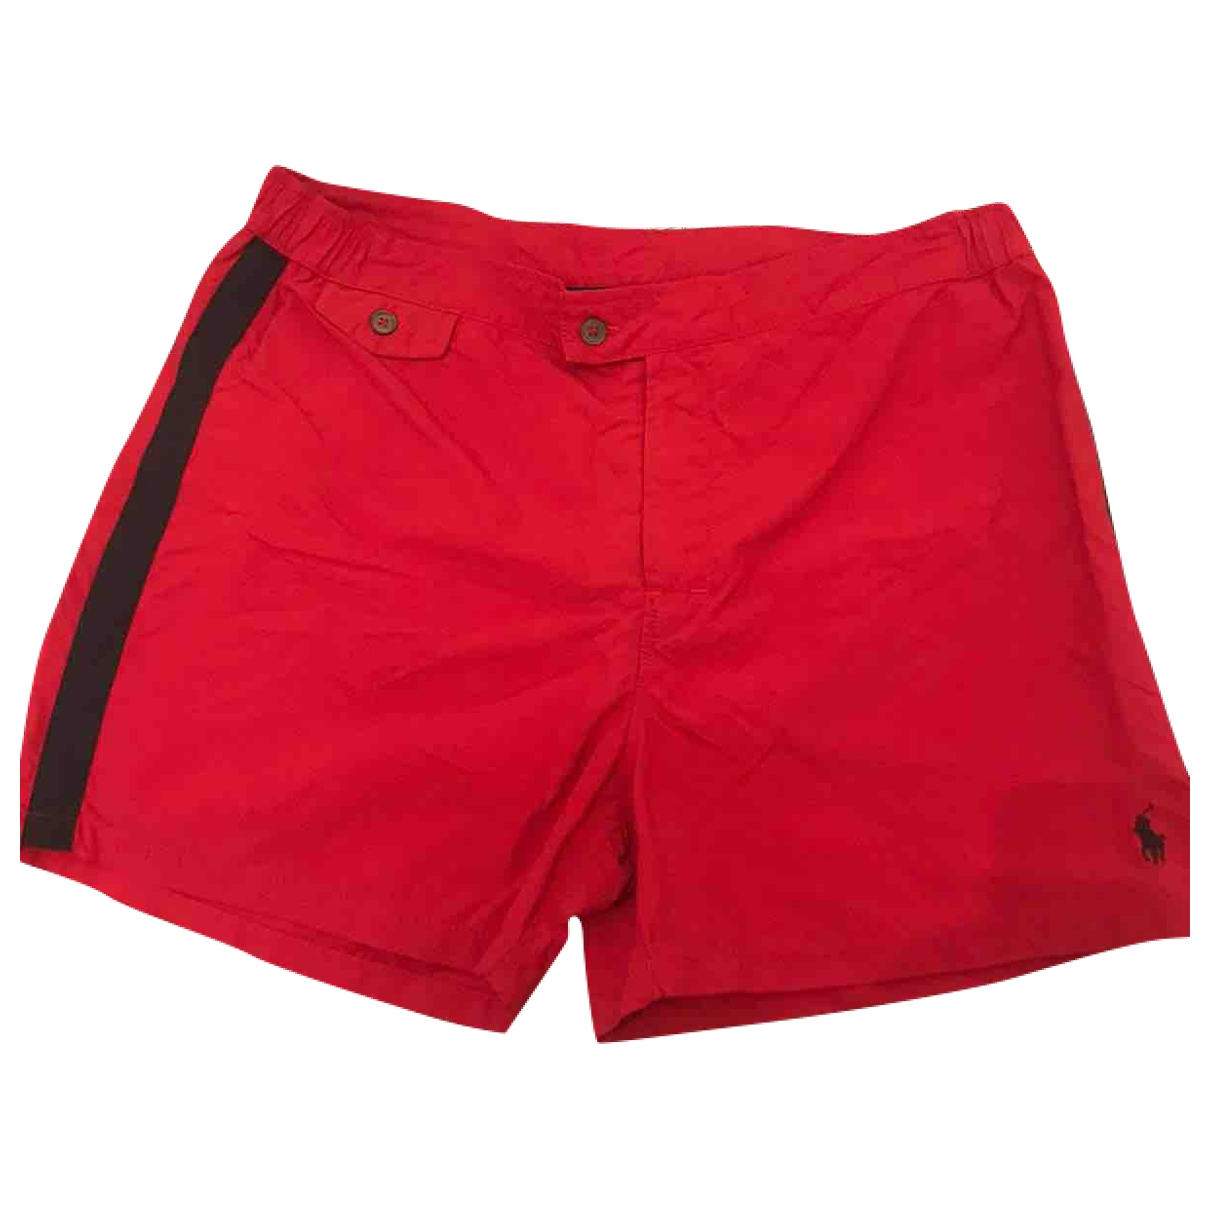 Polo Ralph Lauren \N Red Shorts for Men 34 UK - US